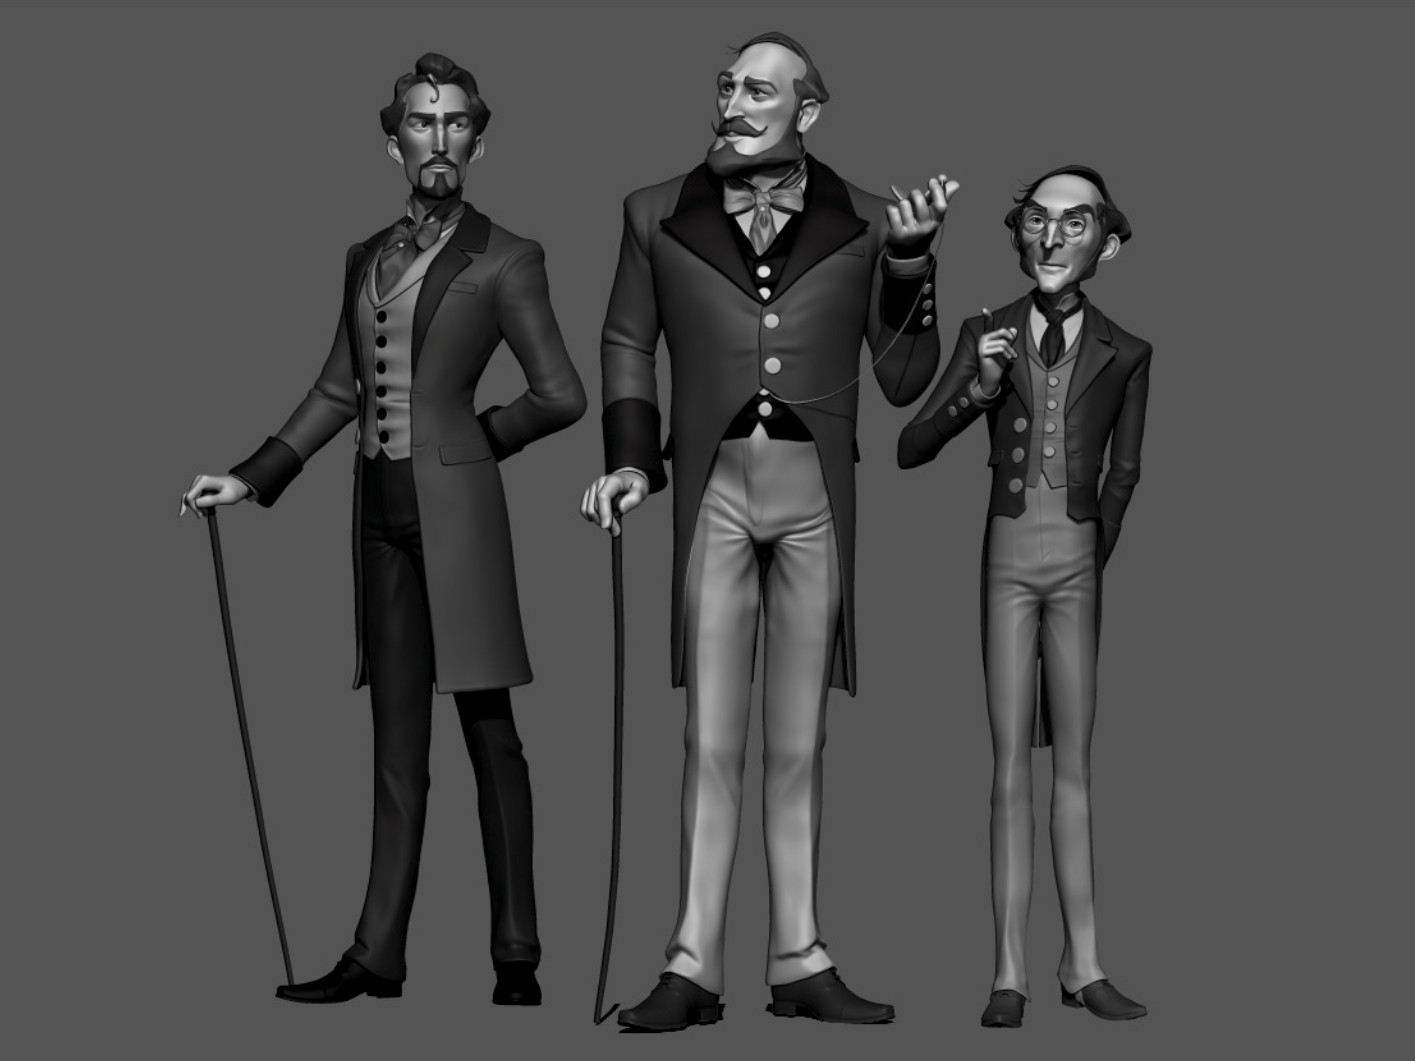 3 of the Characters in Zbrush